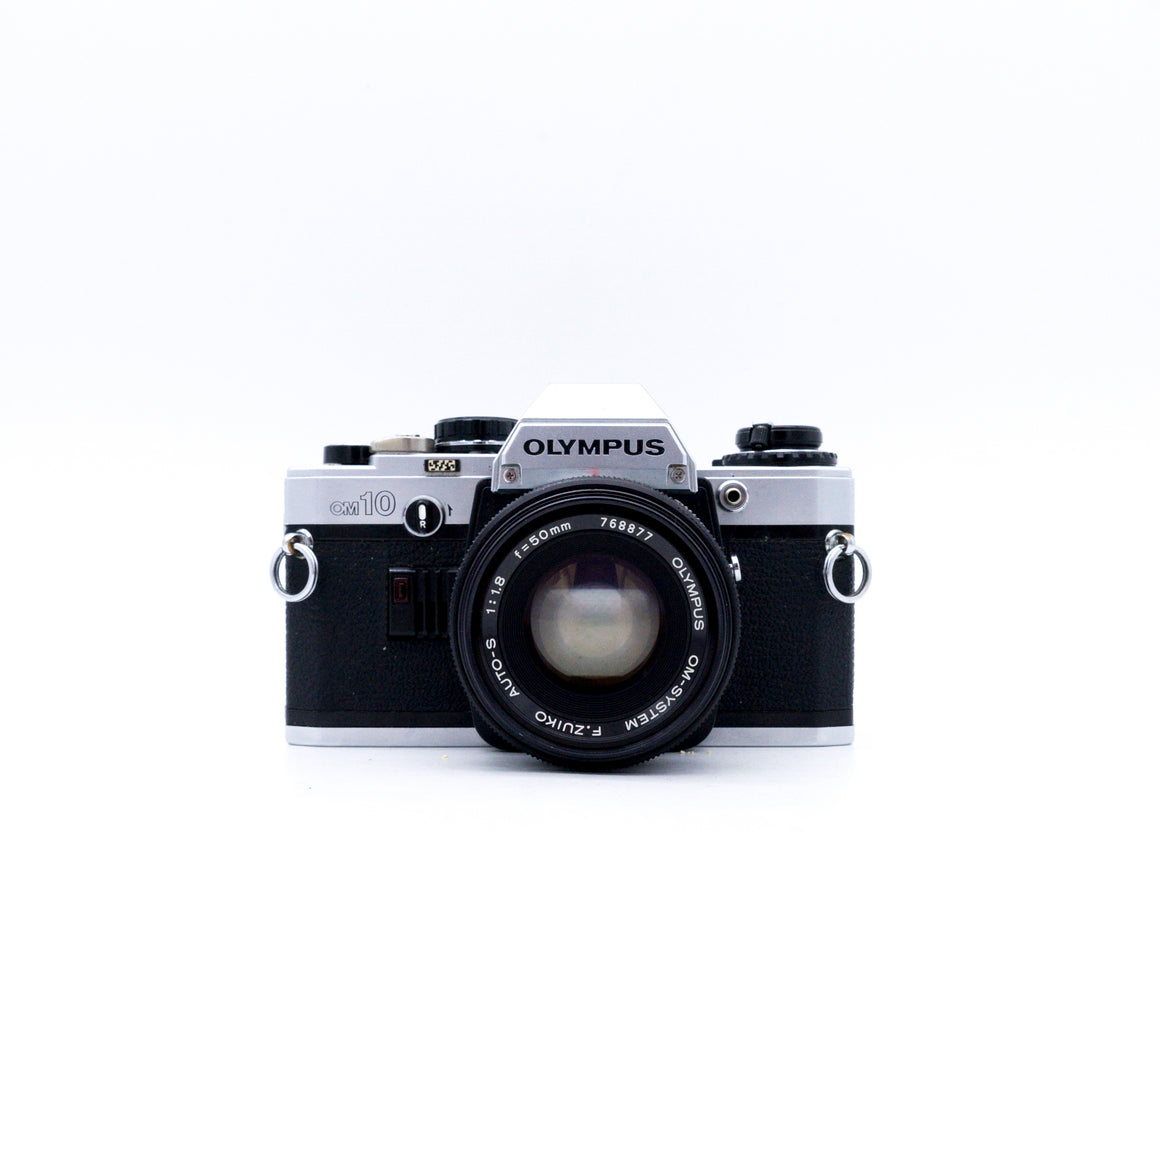 Olympus OM10 SLR Camera with Zuiko 50mm f/1.8 Lens